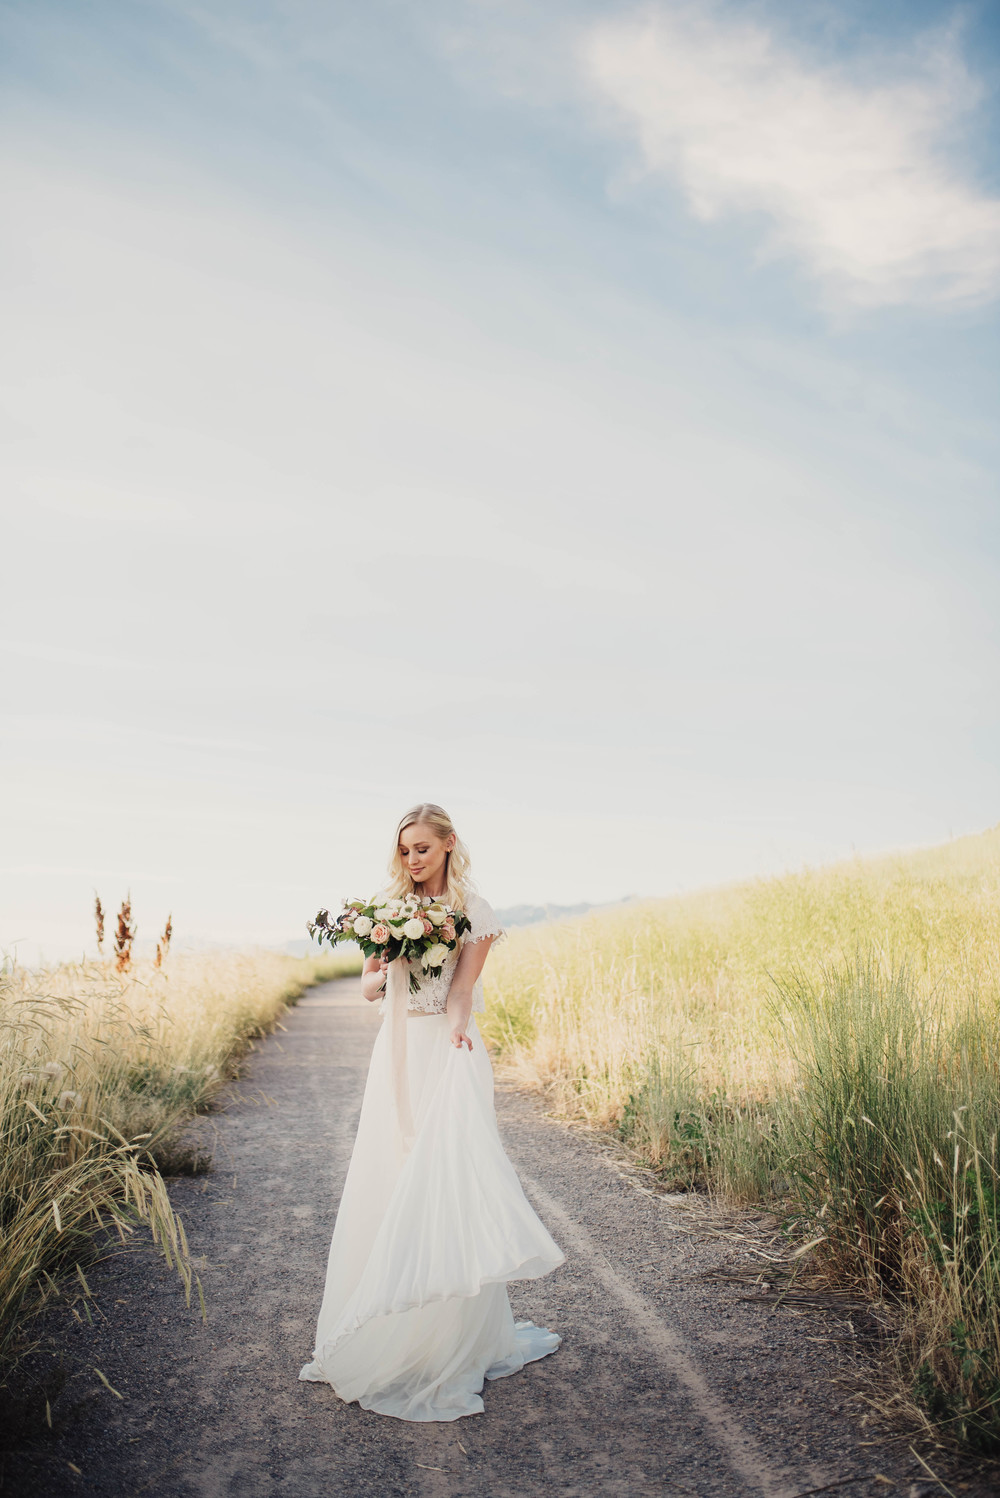 Flowing wedding dress, bride on trail